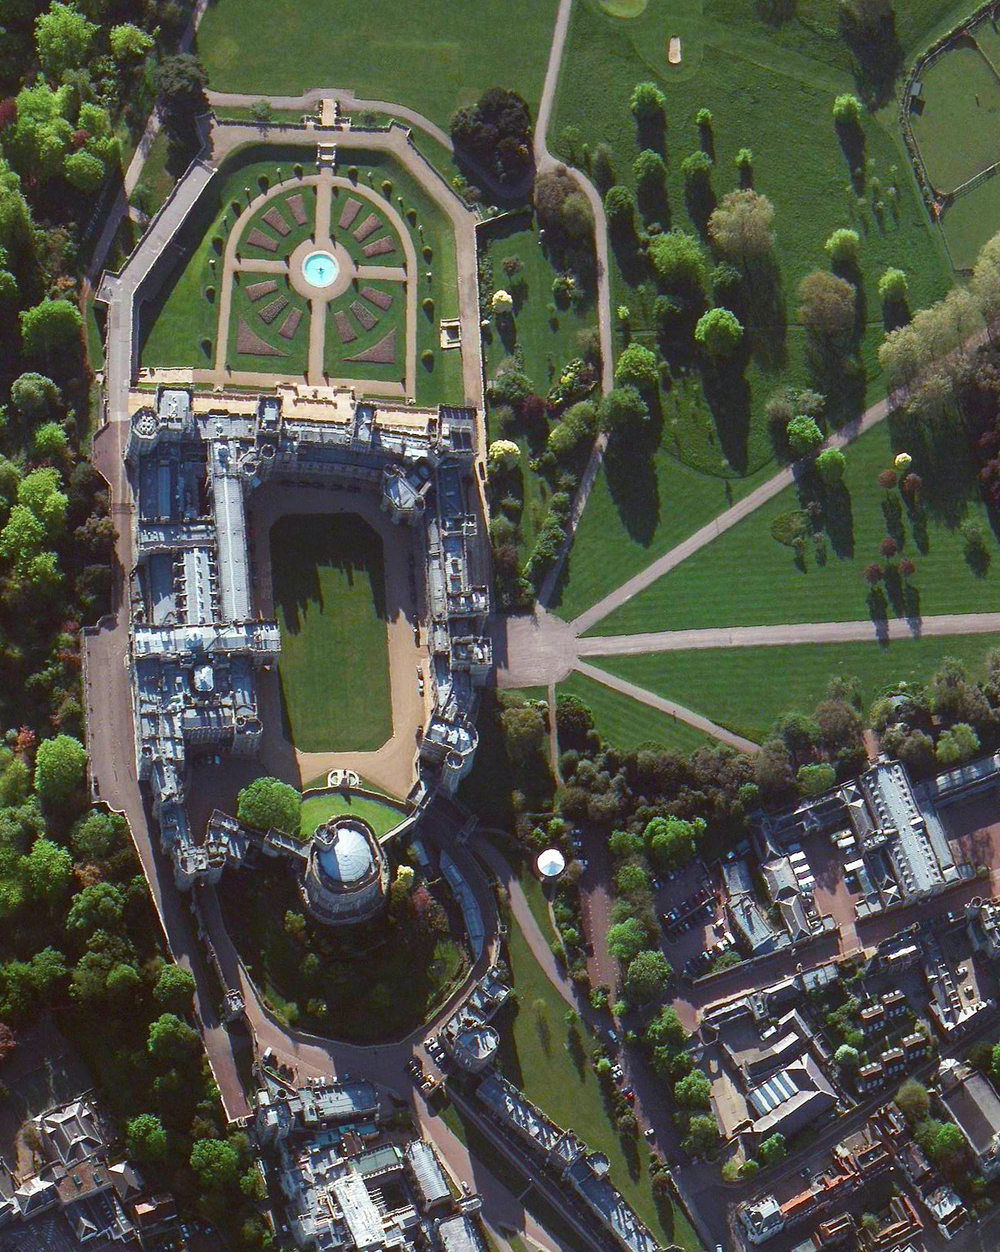 4/21/2016   Windsor Castle   Windsor, England, UK  51°29′0″N 000°36′15″W     Today Queen Elizabeth II celebrates her 90th birthday. Windsor Castle, located in English county of Berkshire and seen in this Overview, is one of her official residences and her preferred weekend destination. More than 500 people live and work in Windsor Castle, making it the largest inhabited castle in the world.